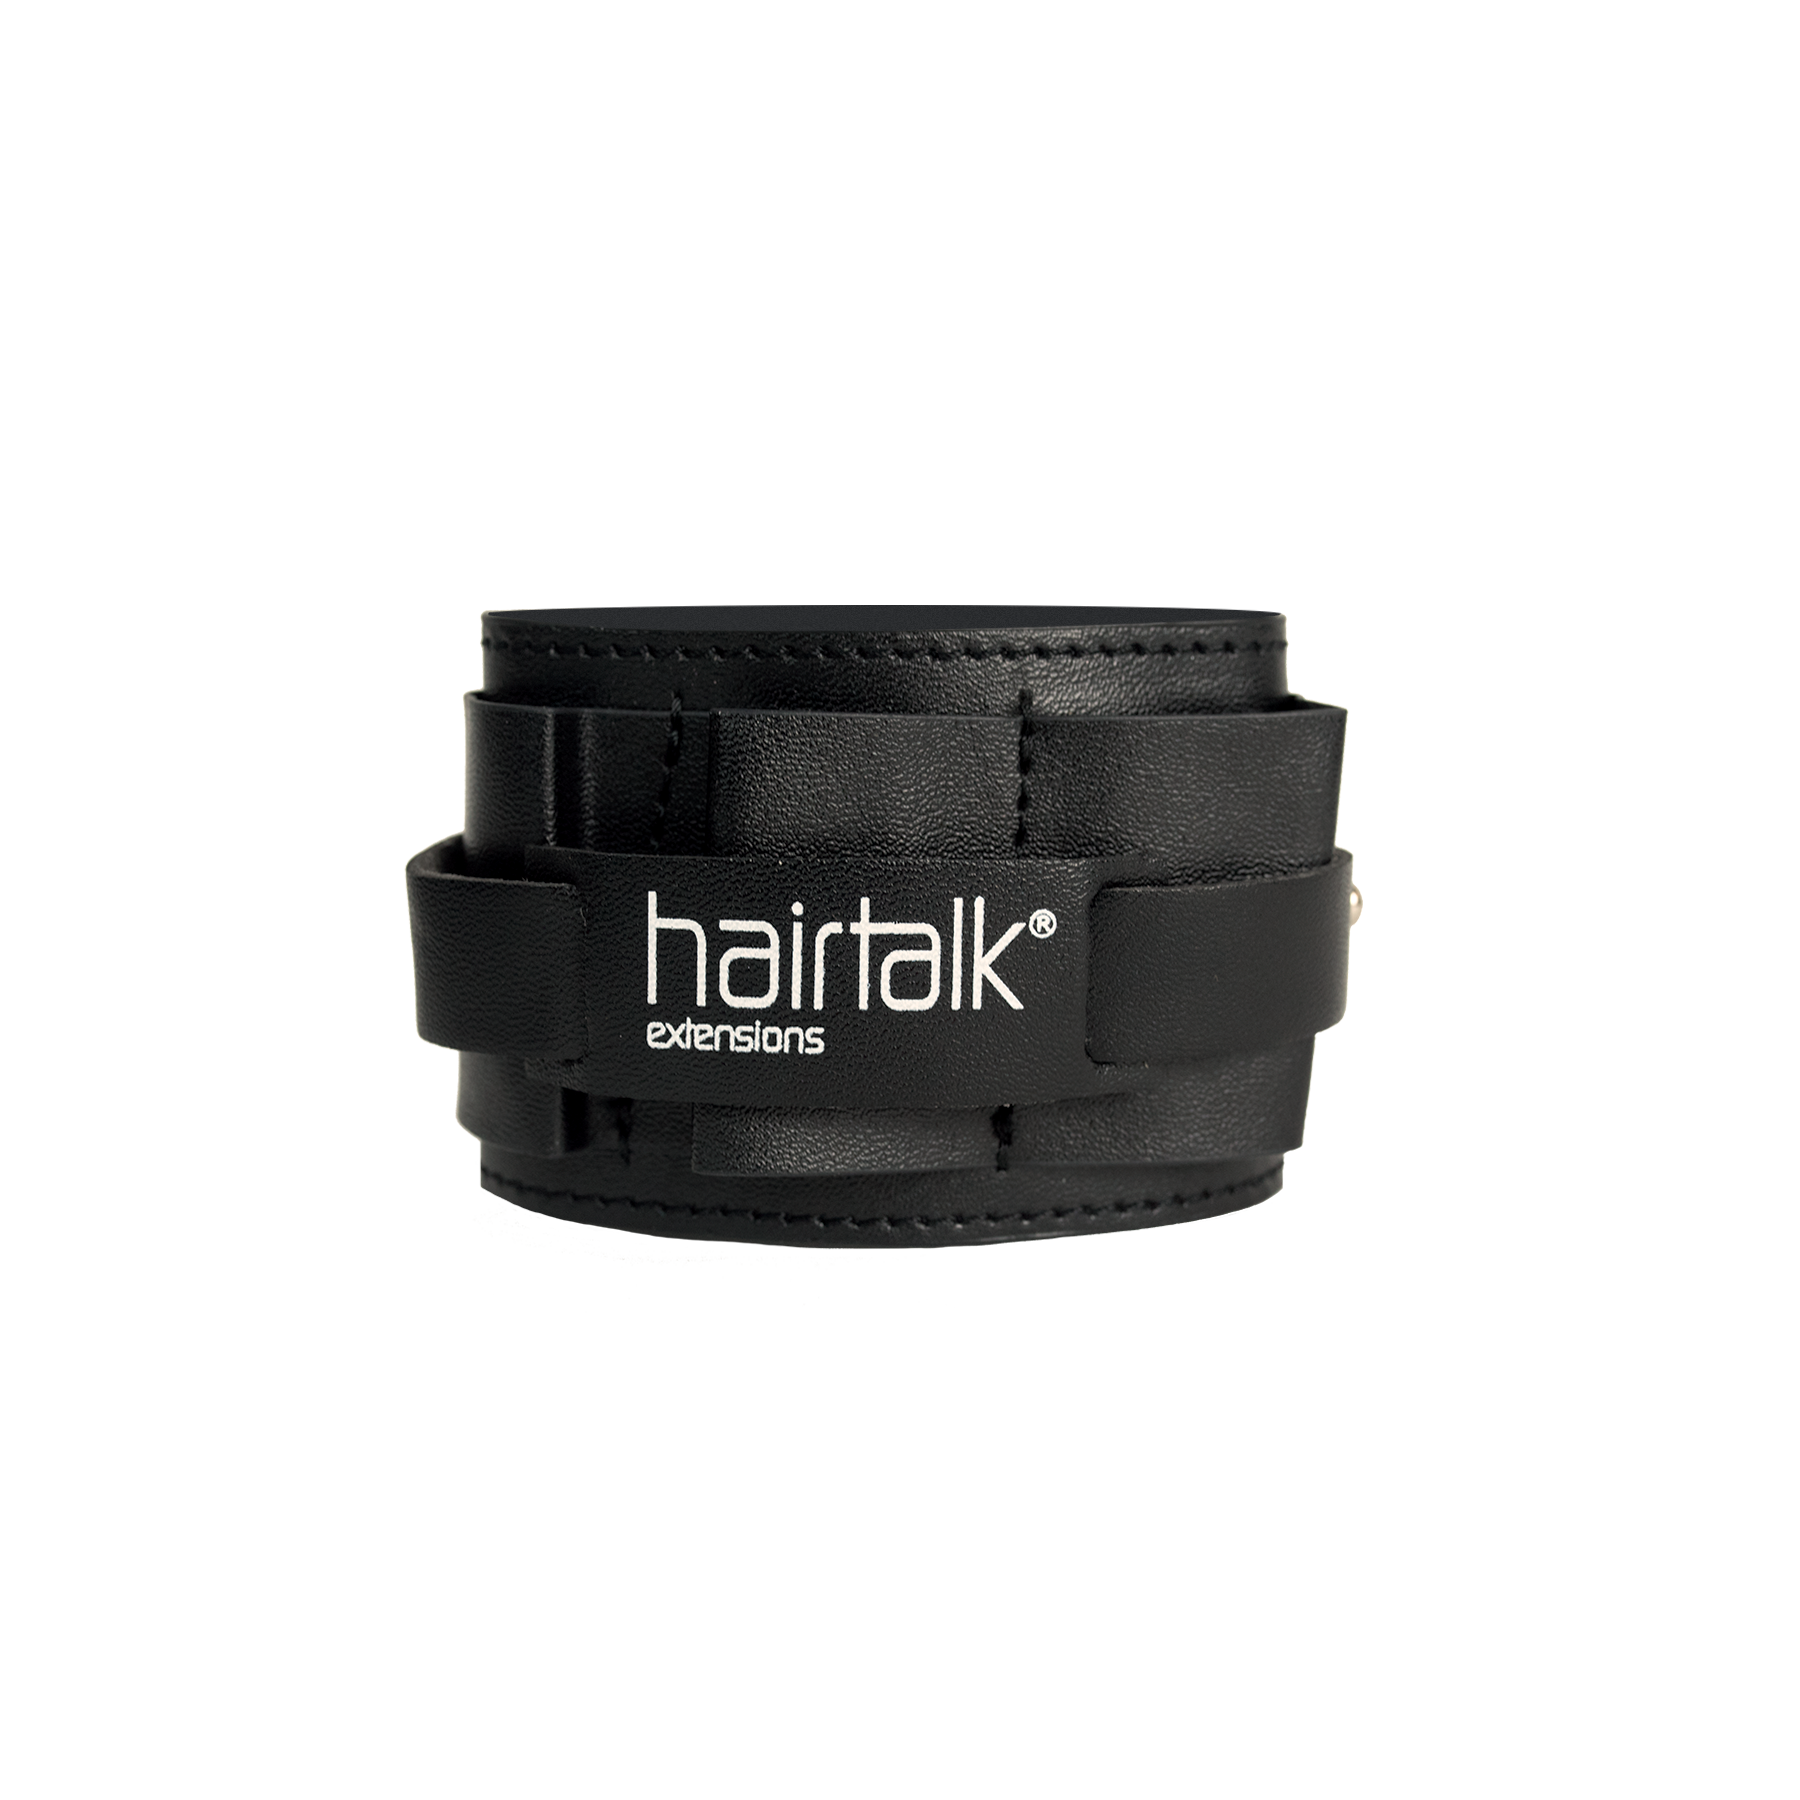 Hairtalk Tool Wristband